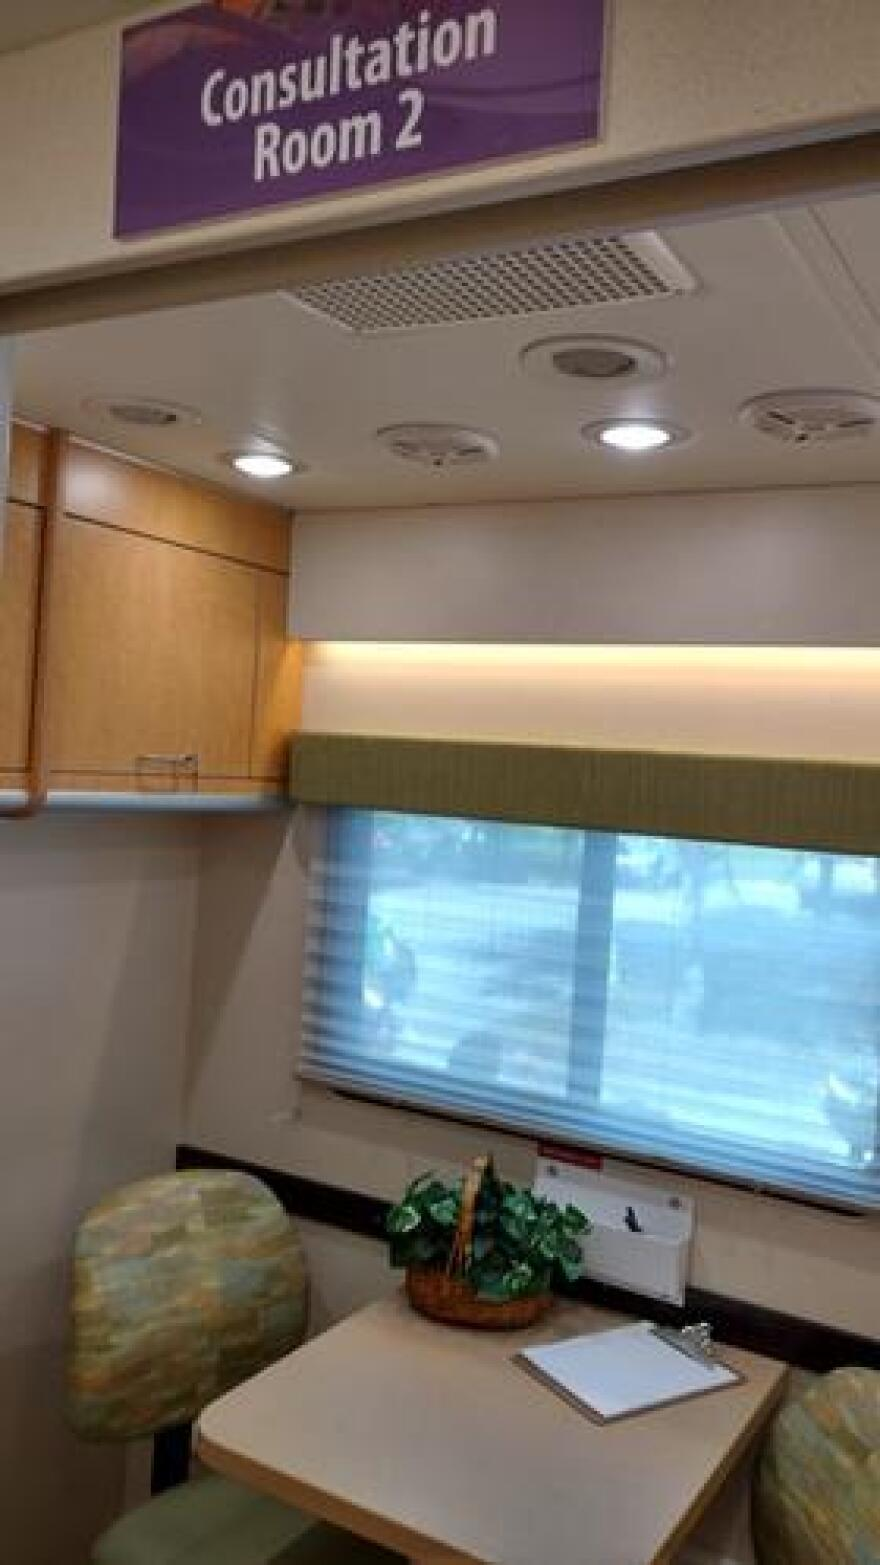 Consultation room 2 in the Mobile Suite will be mainly used to interview the caregivers of clinical trial participants.